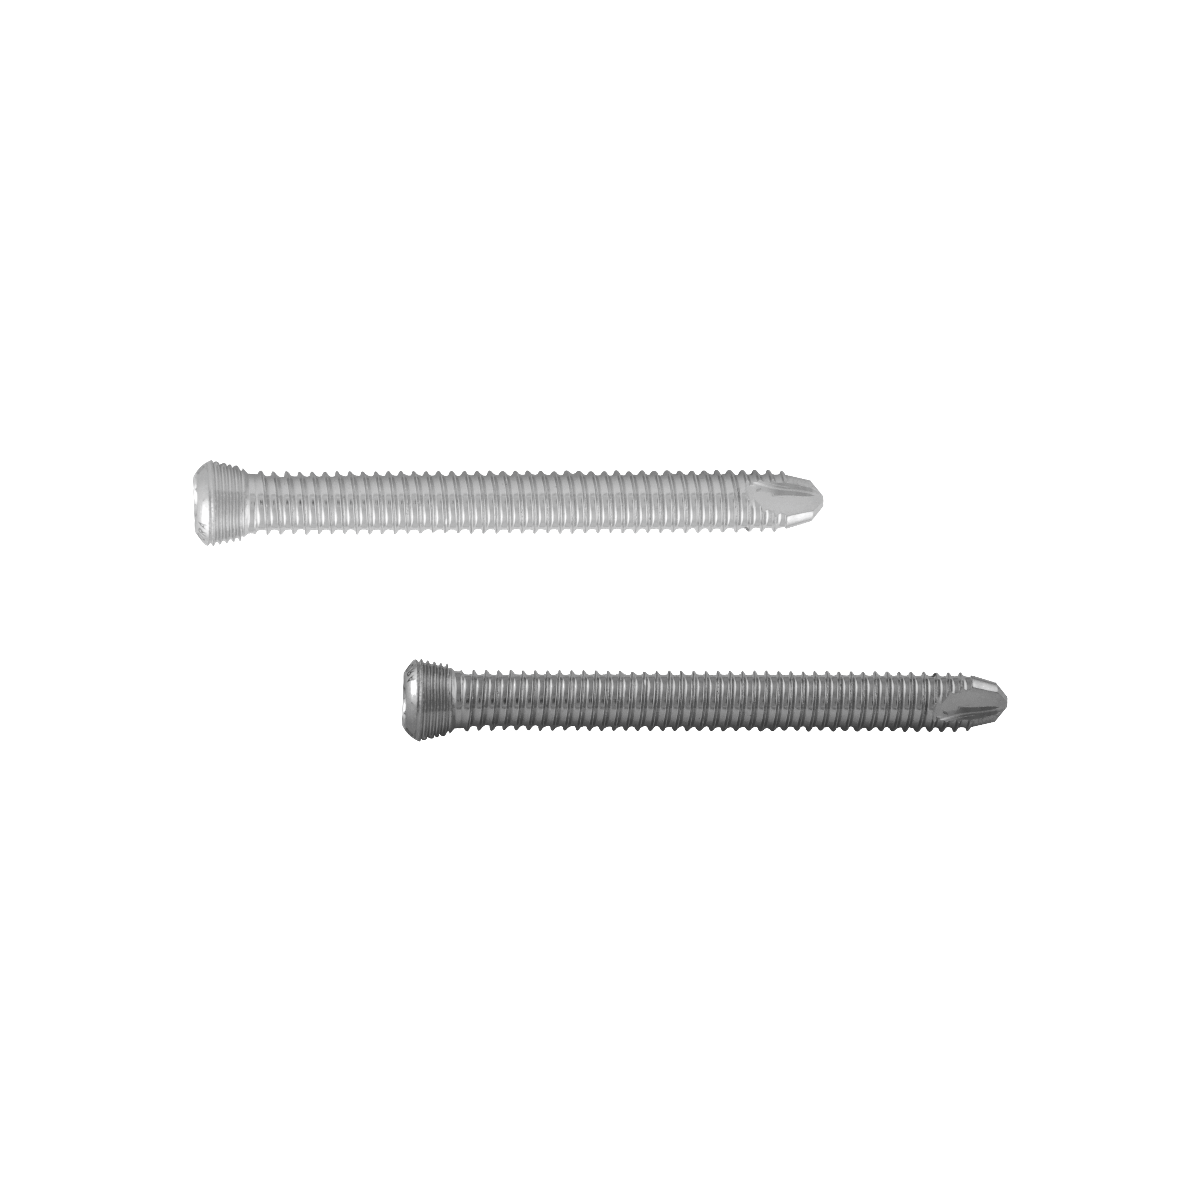 5.0 MM Locking Head Screw Self Tapping - Star Drive